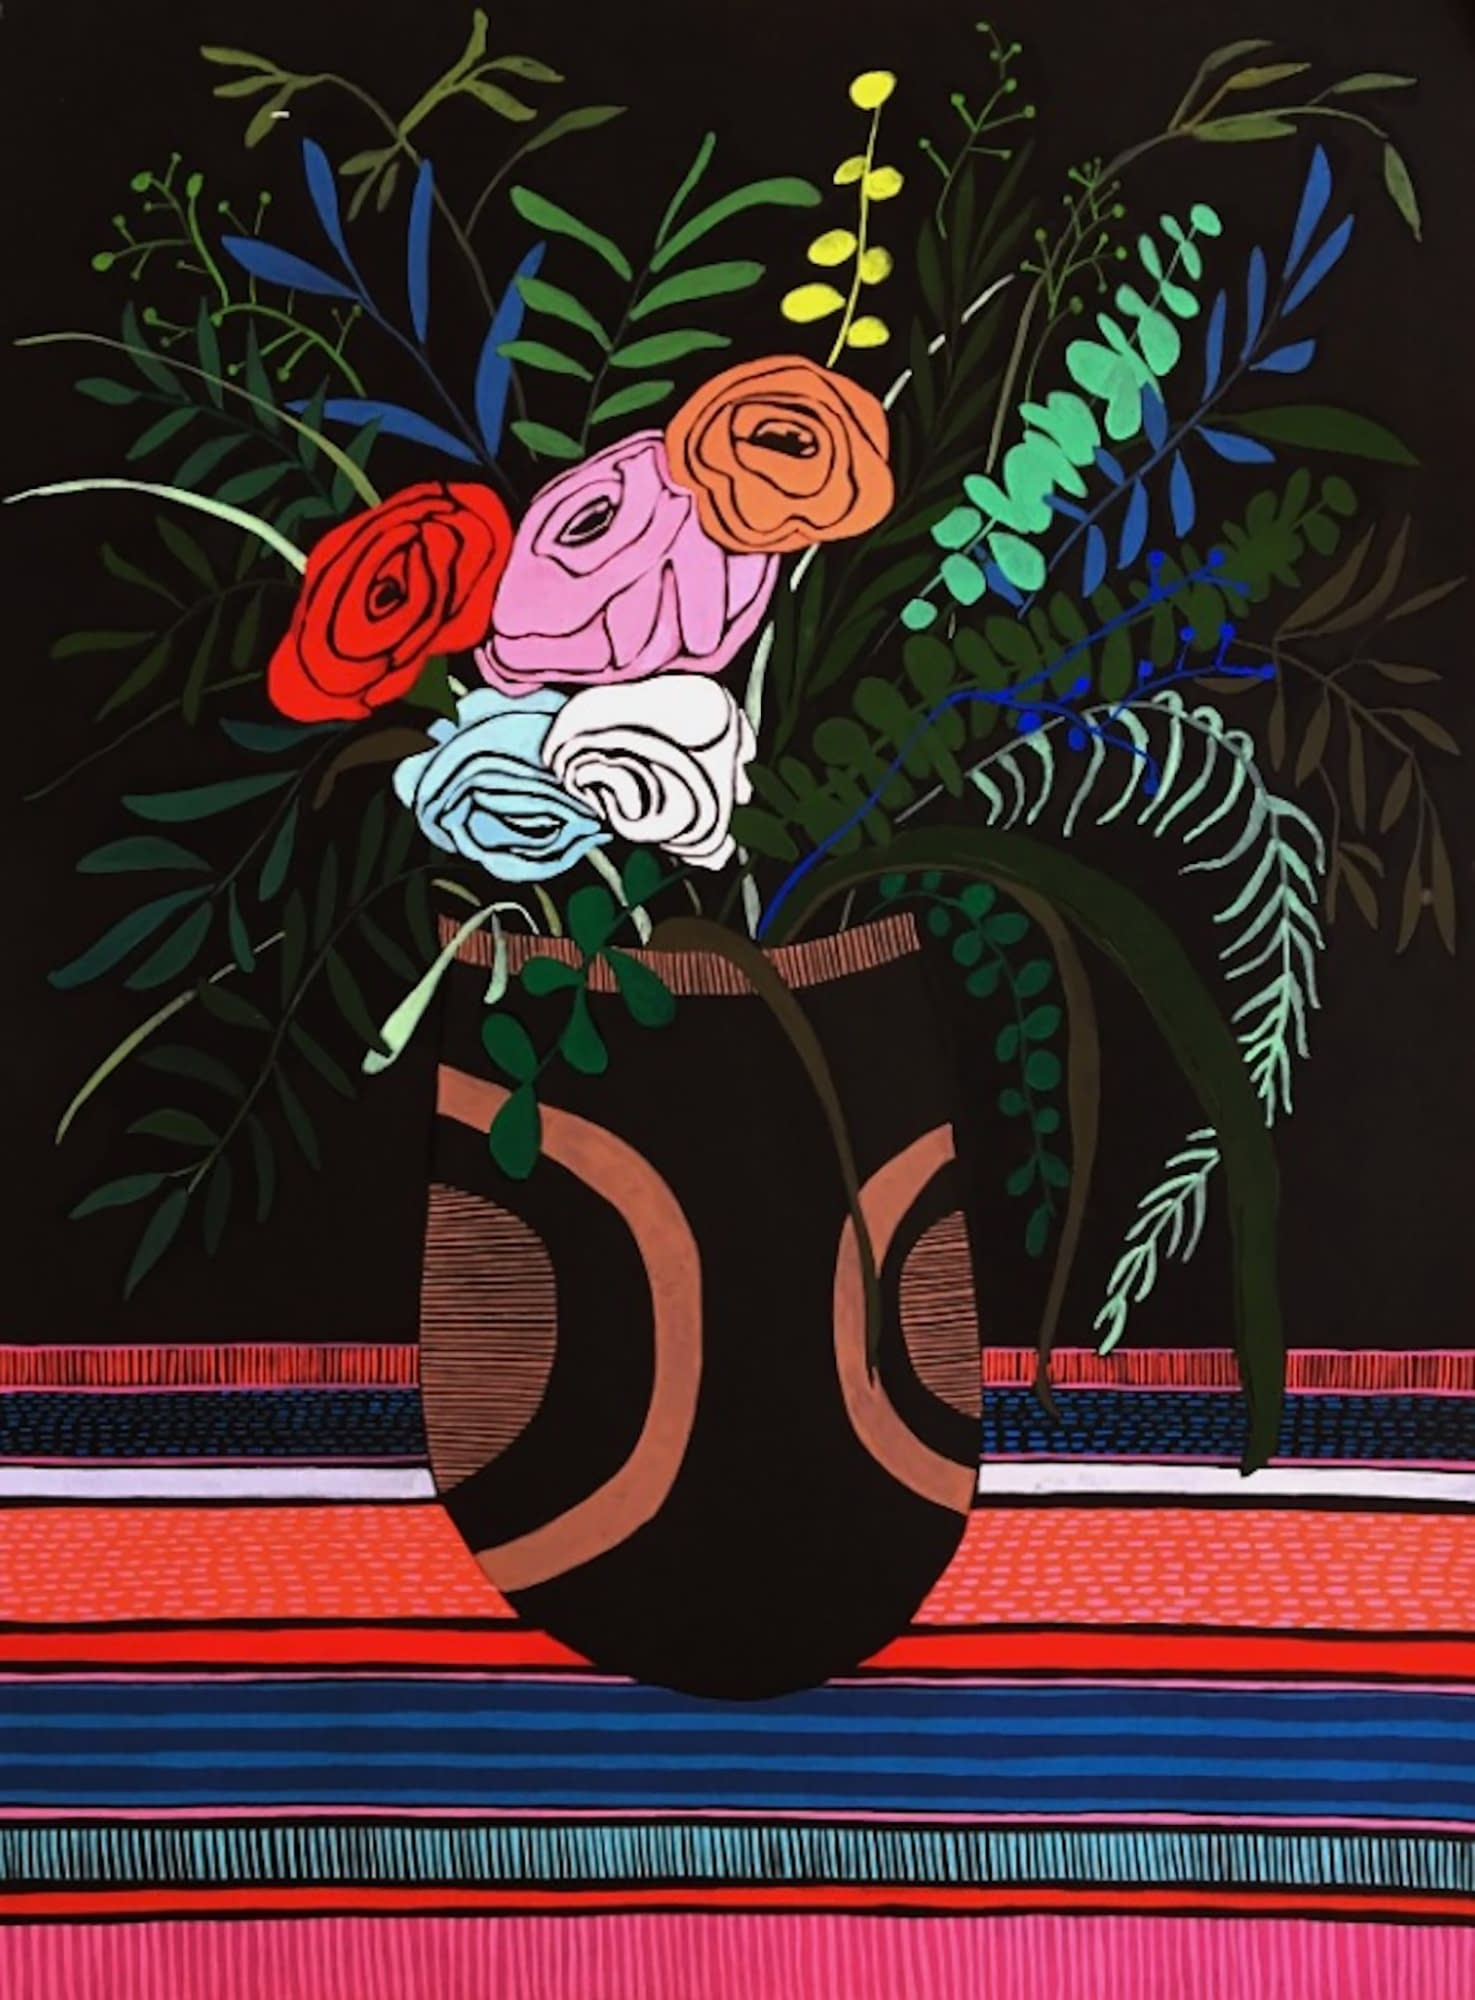 Flowers_2_mary_finlayson_Gouache_on_Paper-22_16.5_inches_unframed